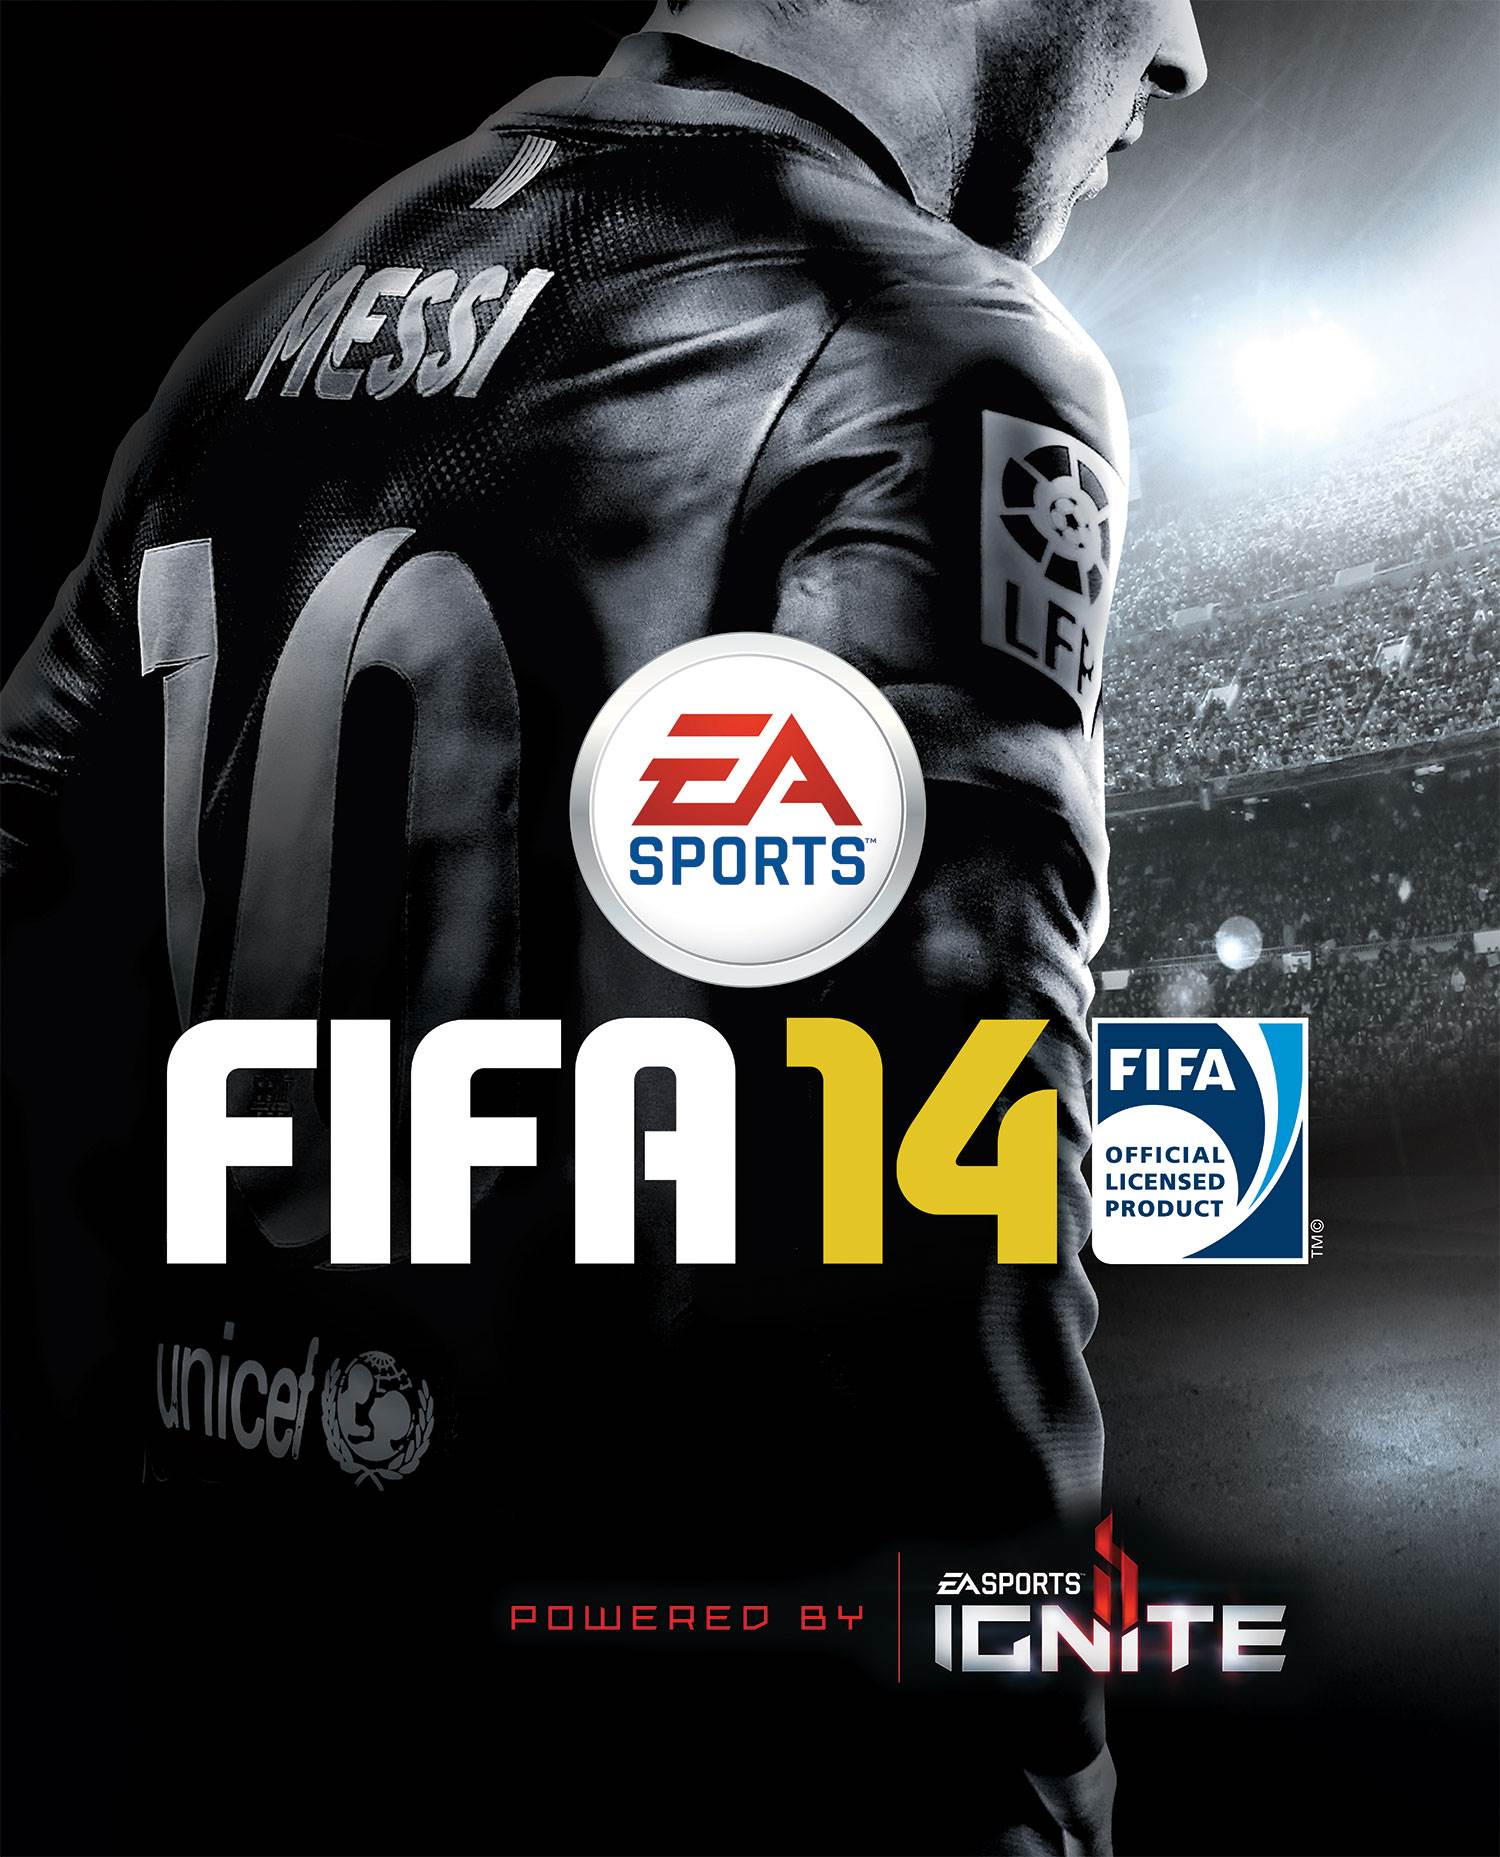 FIFA 14 WALLPAPERS IN HD « GamingBolt.com: Video Game News ...